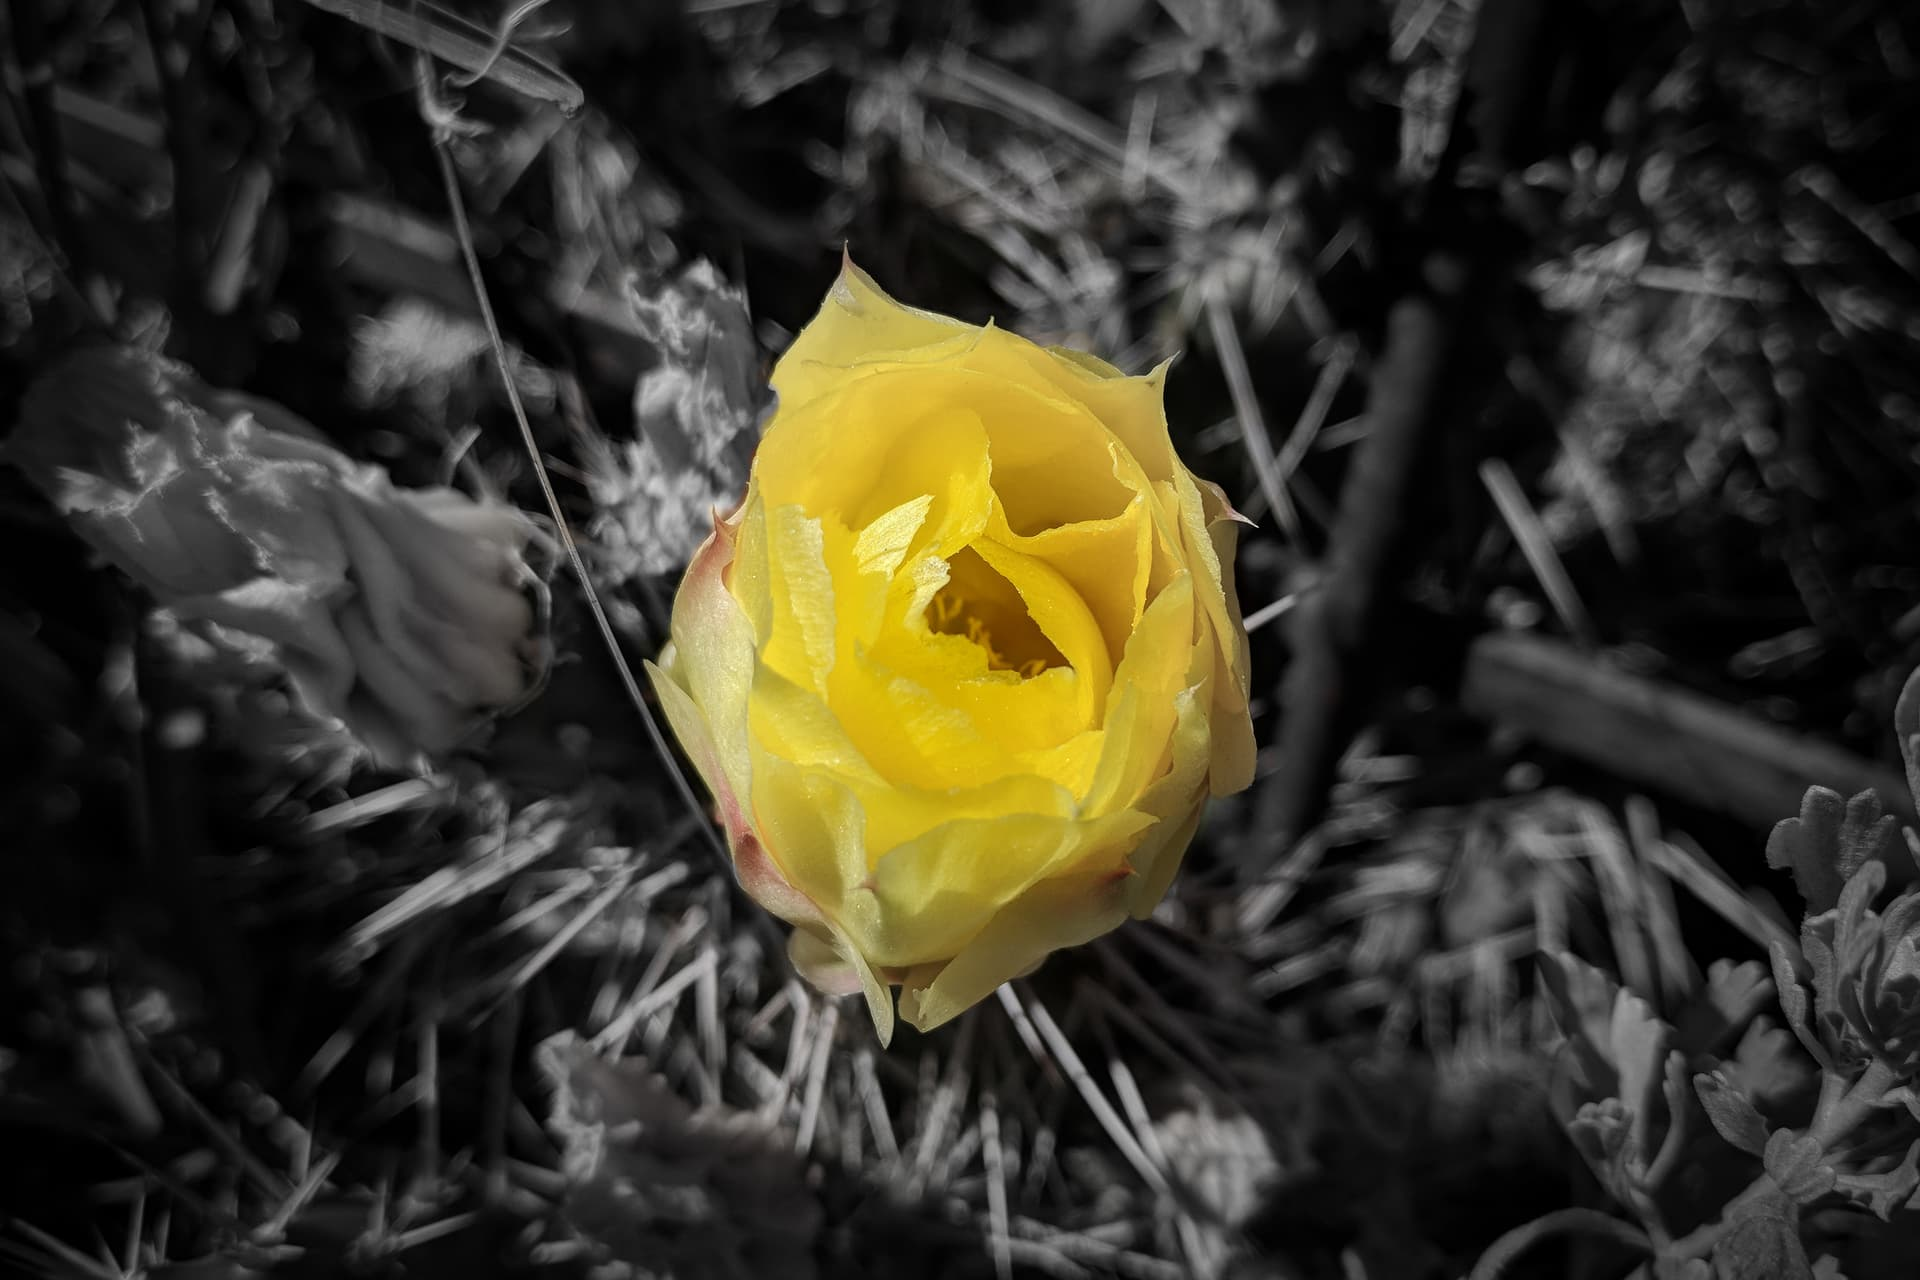 A bright yellow cactus flower.